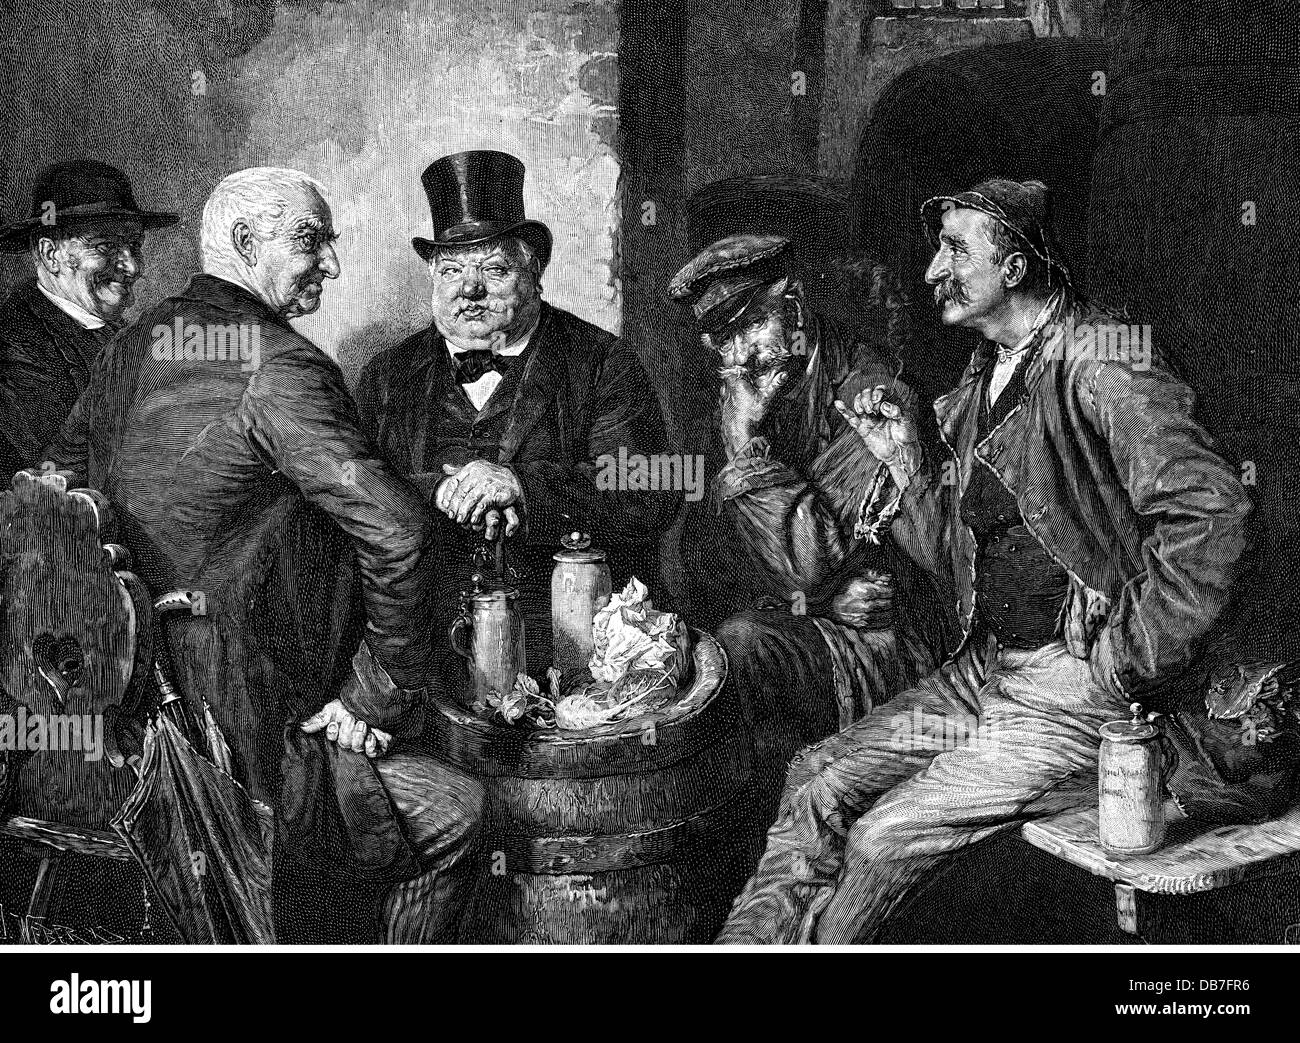 alcohol, beer, 'Gallows humour' (Galgenhumor), after painting, by Eduard von Grützner (1846 - 1925), - Stock Image